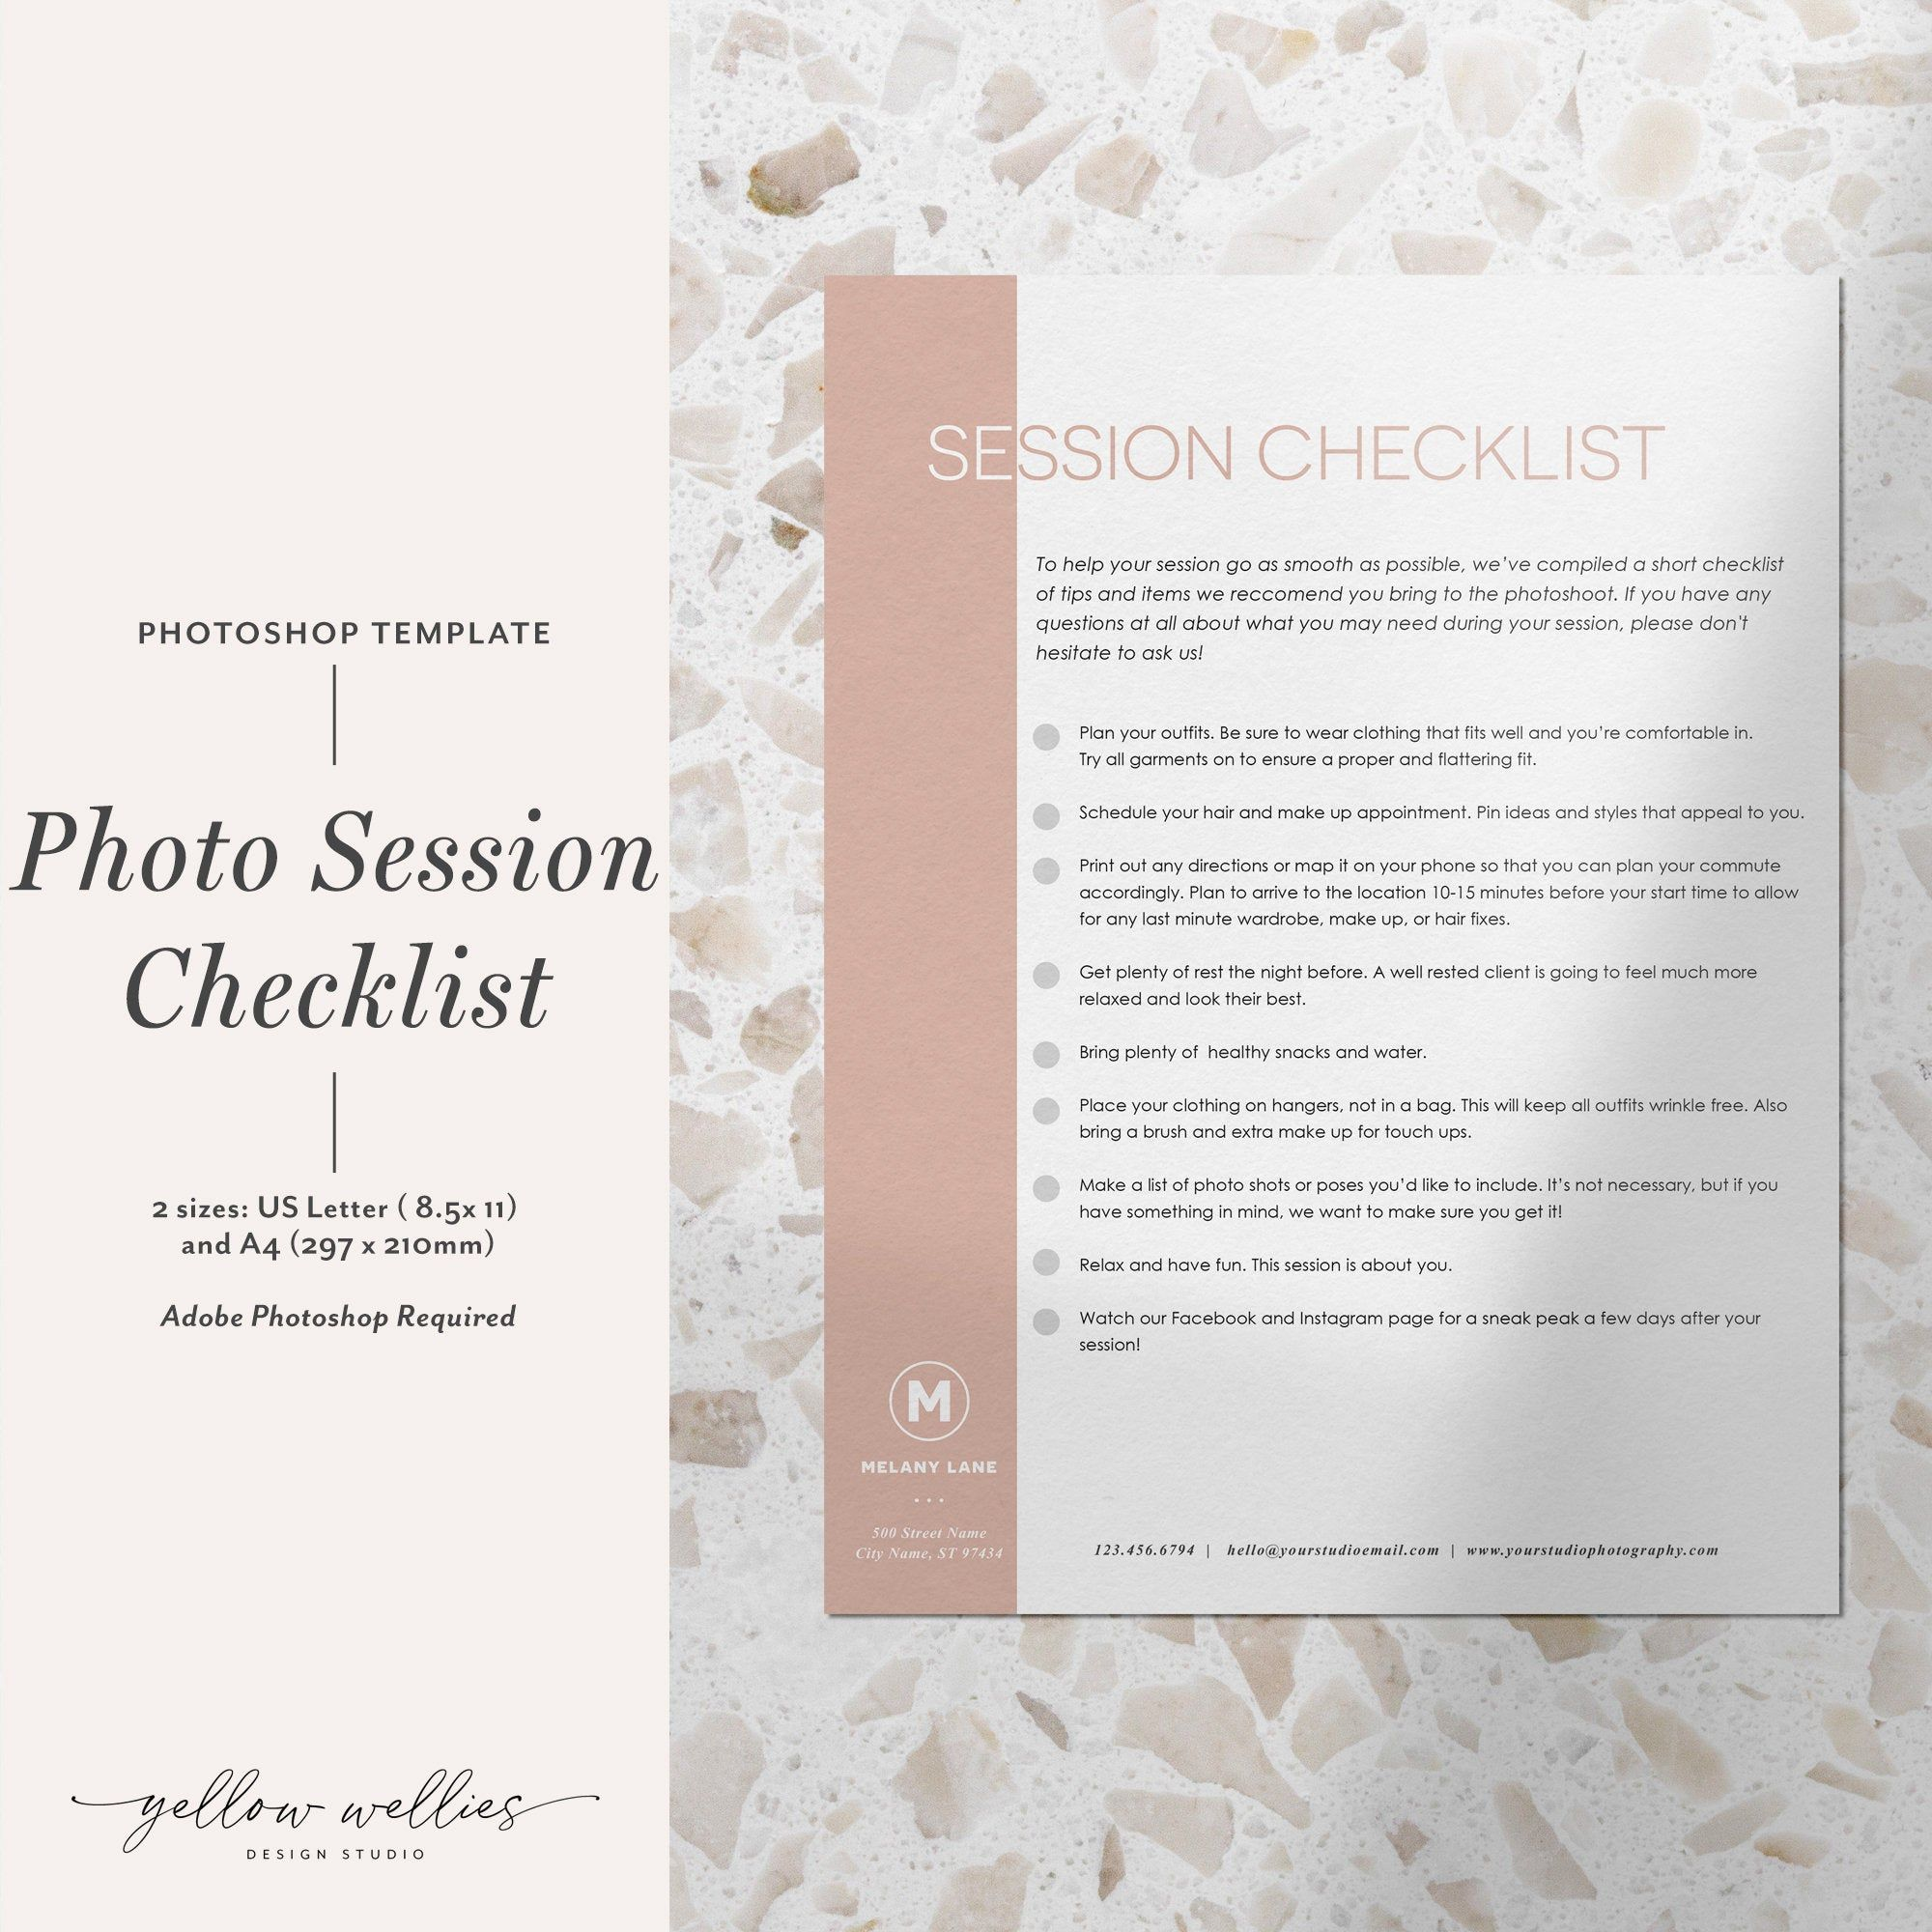 Photoshop Photography Session Checklist Photo Session Etsy Photoshop Photography Photoshop Photo Sessions